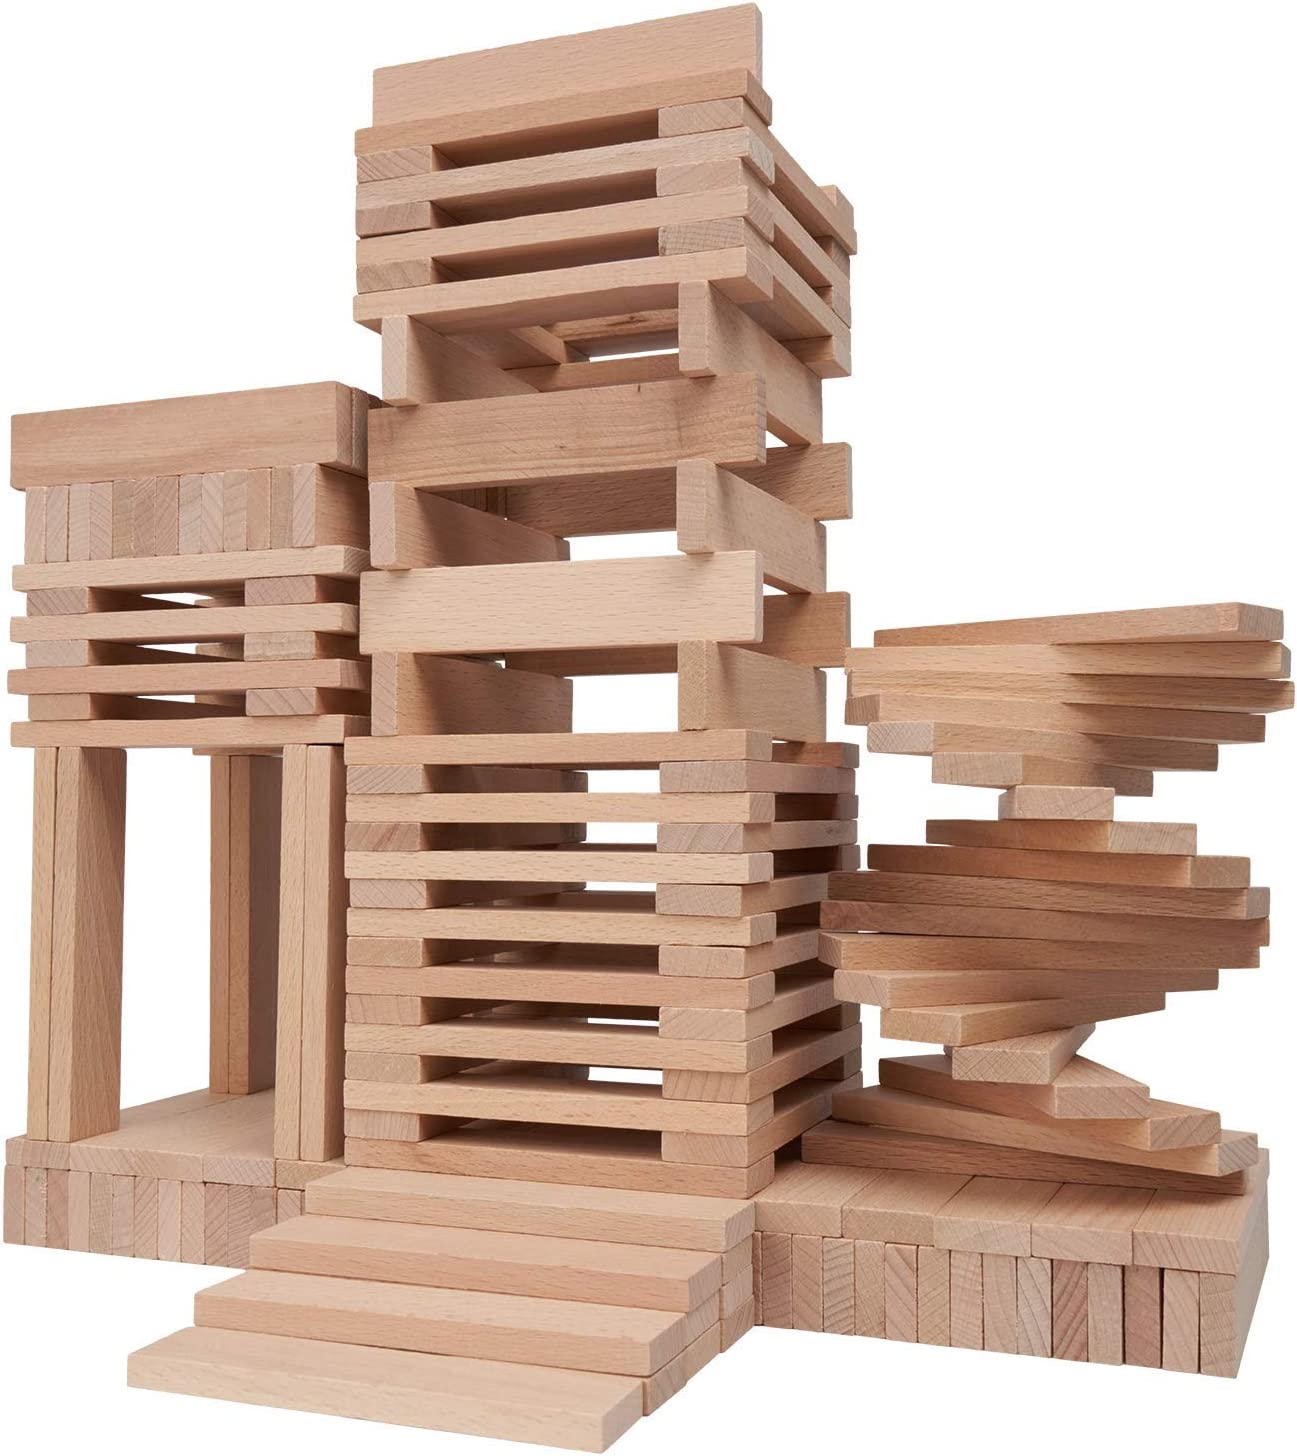 Large Wooden Building Planks Toys 100/% Nature Beechwood-200 Pieces Future Way Wood Building Blocks for Kids Boys and Girls Castle Play Set for Toddlers